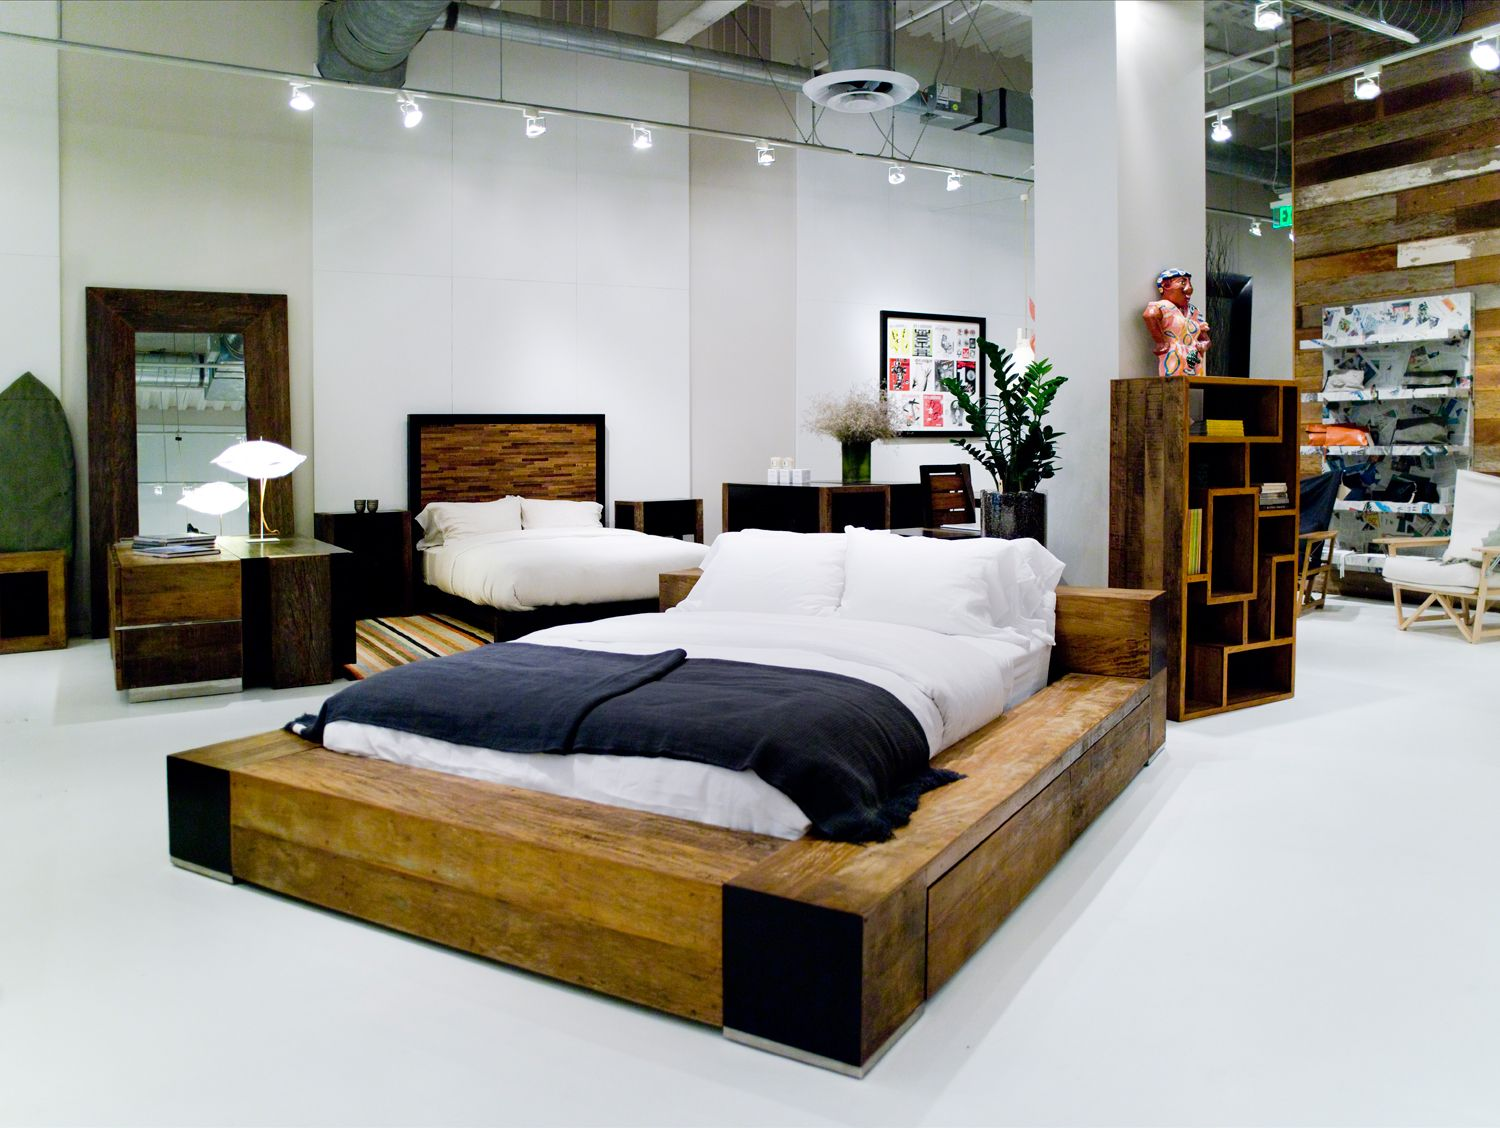 Edge Bed Environment Orange County Showroom Recamara Matracas